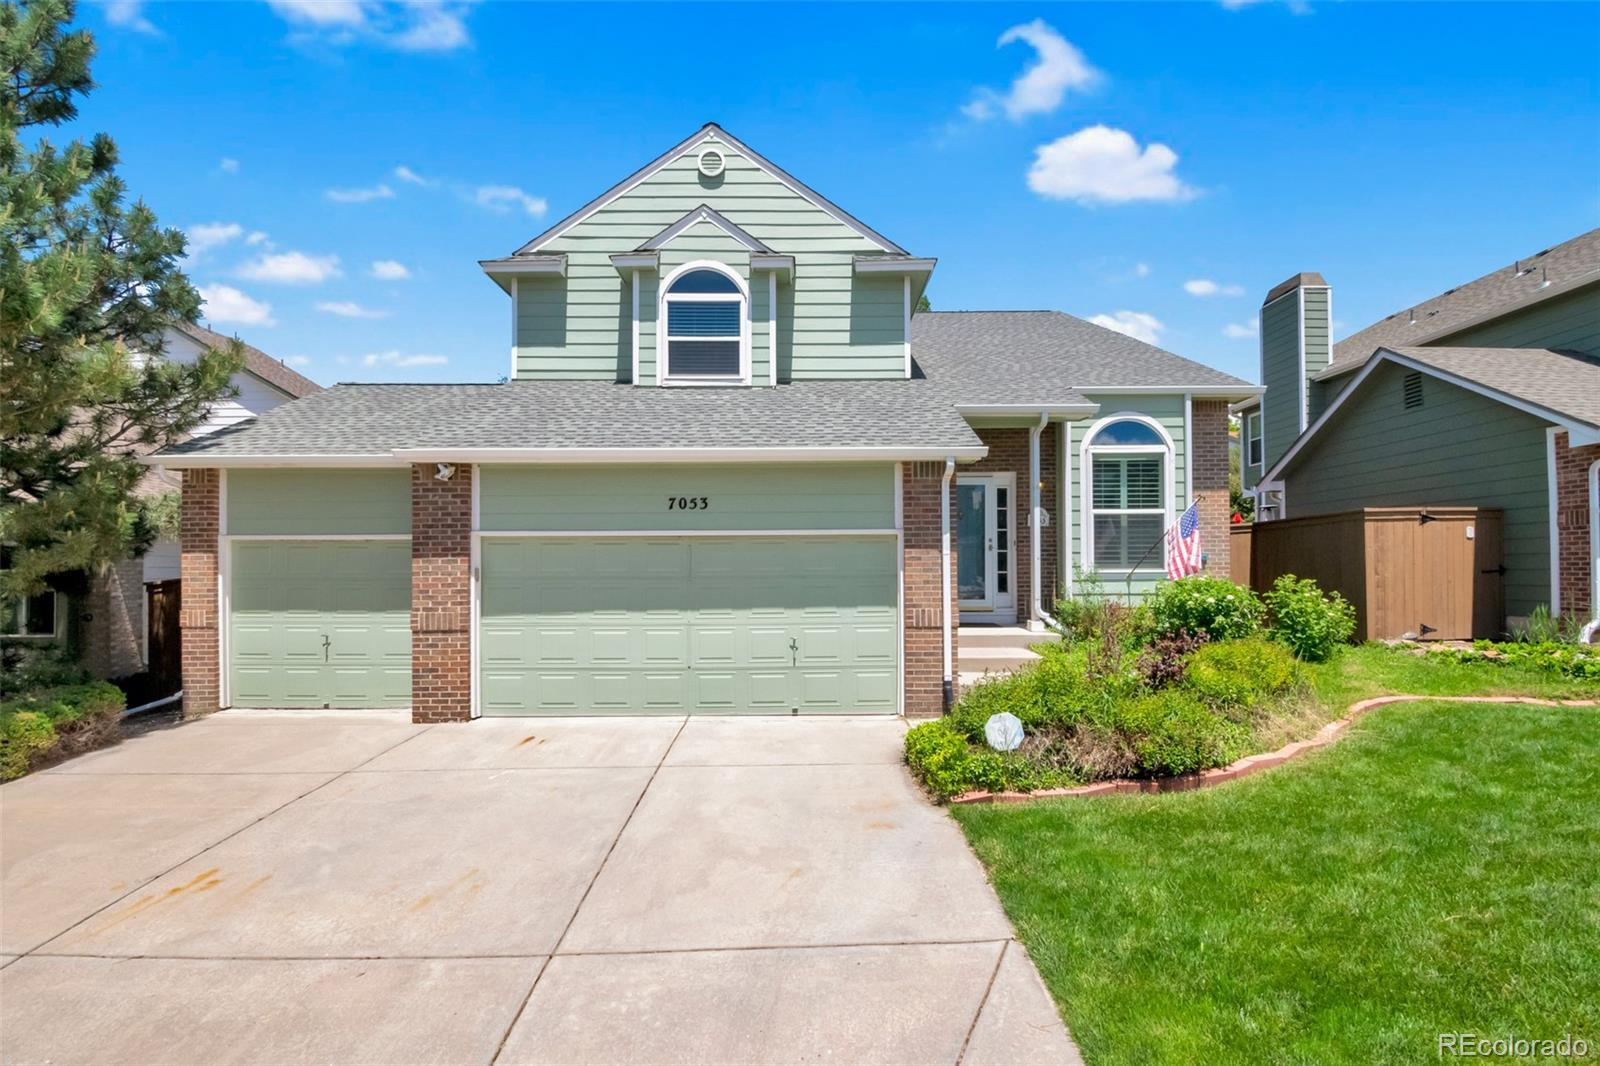 7053 Townsend Drive, Highlands Ranch, CO 80130 - MLS#: 8392115